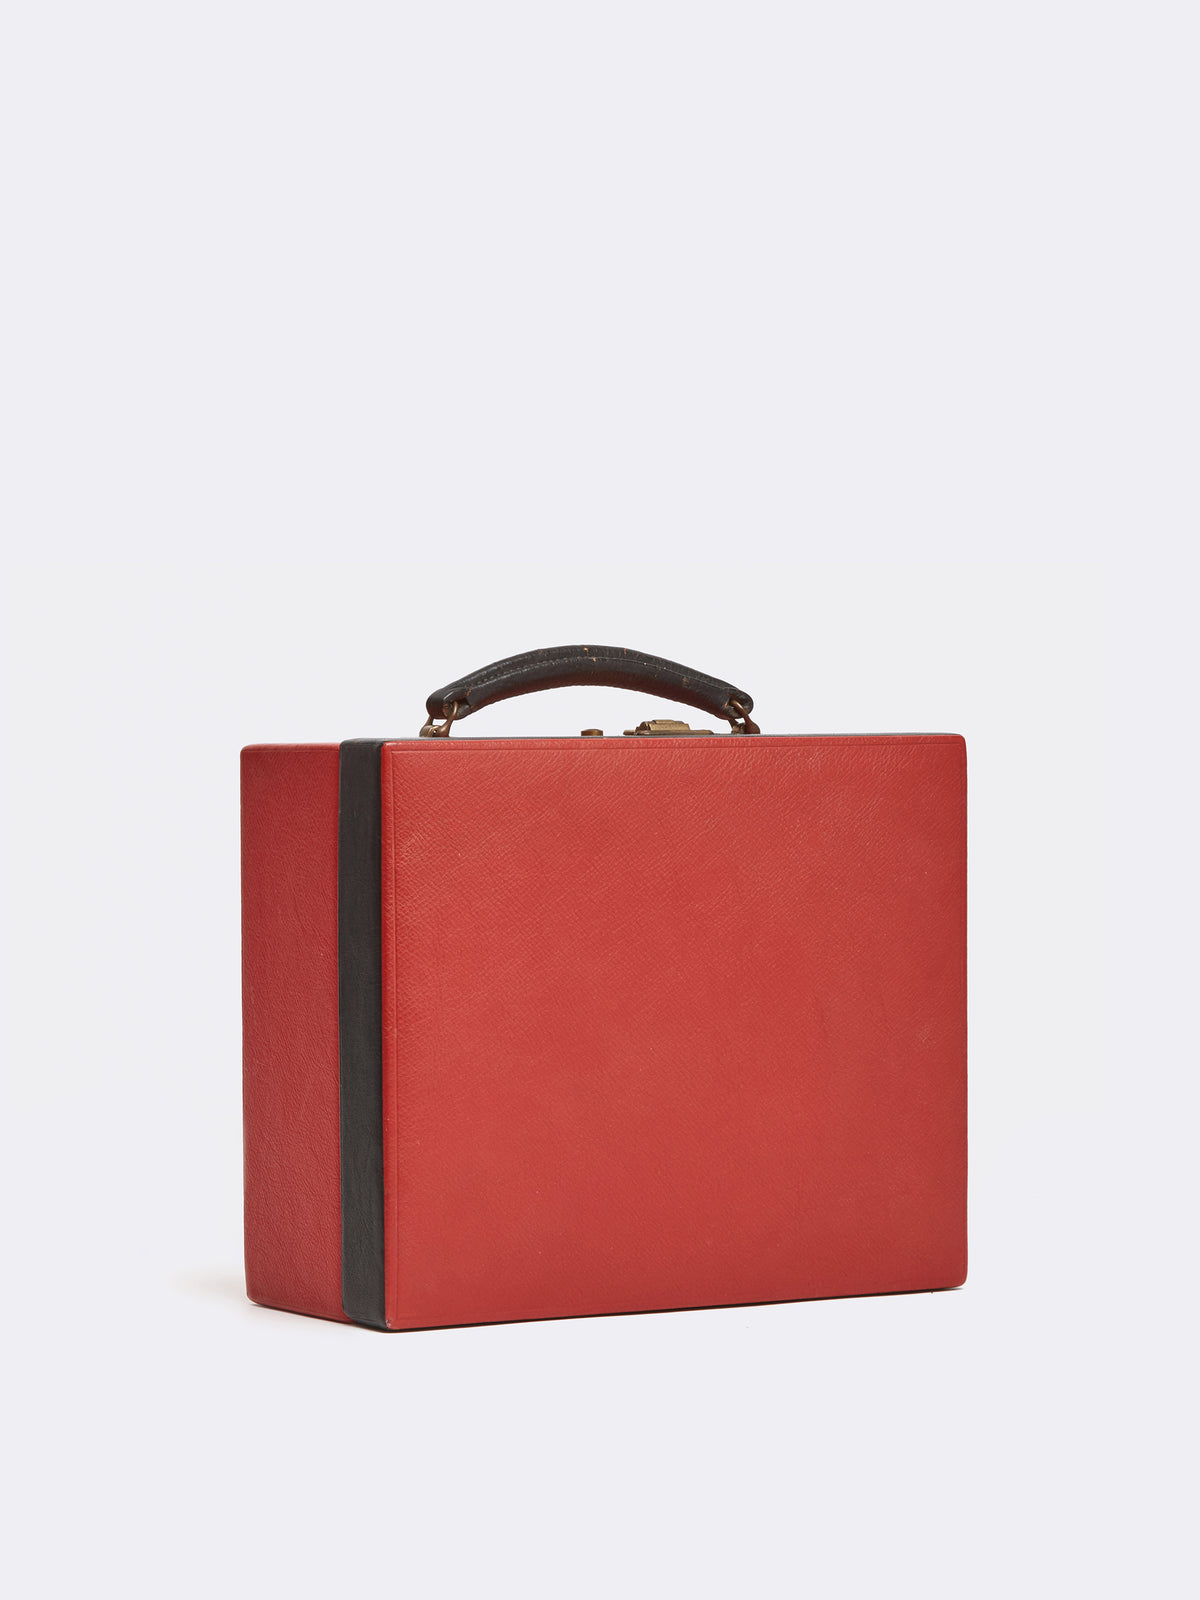 Mark Cross Archive Travel Kit Leather Red Side